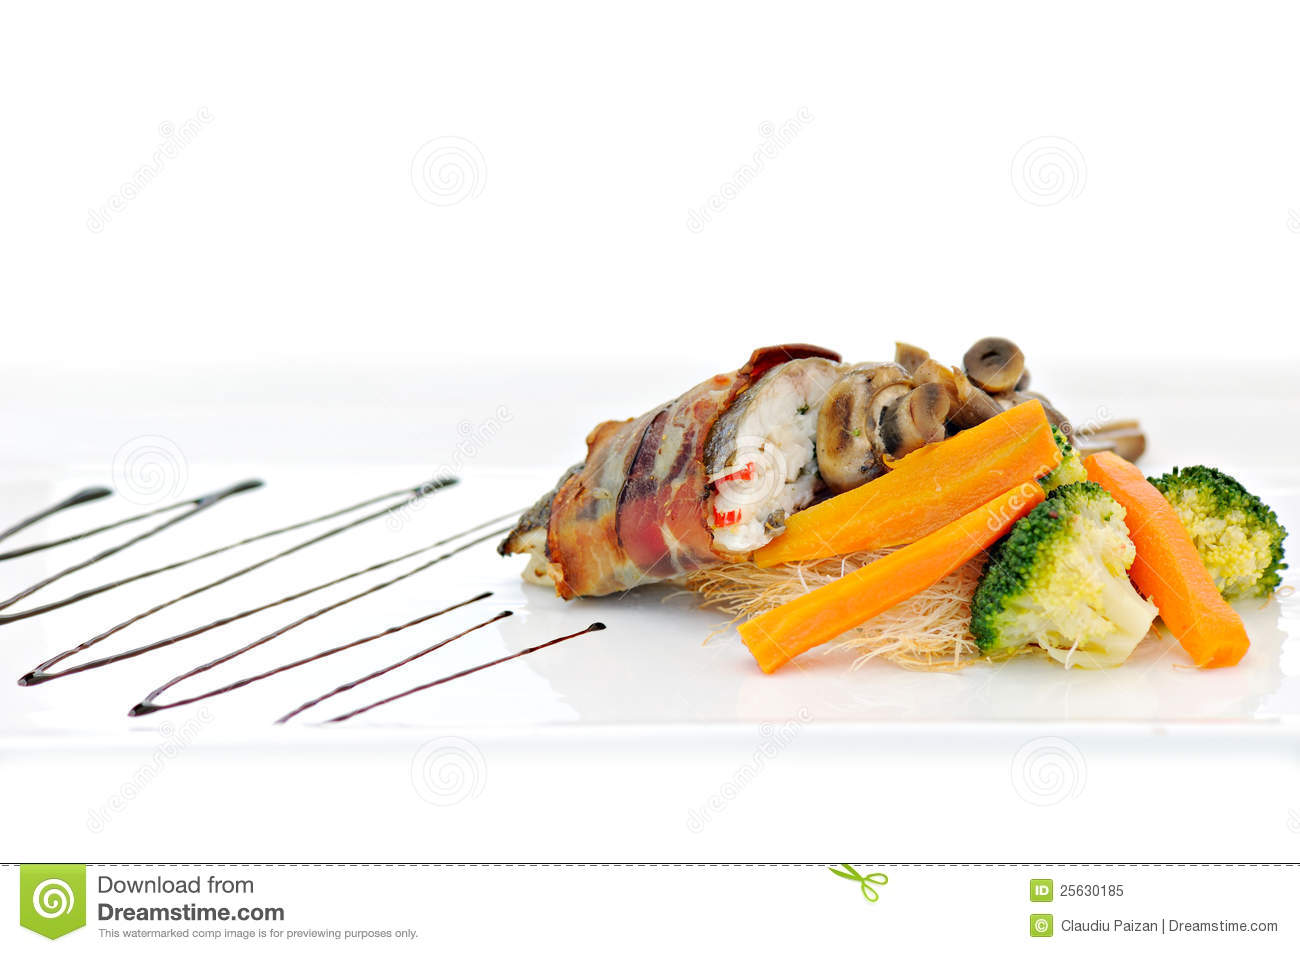 Fish bacon and vegetables royalty free stock photo image for Fishing with bacon